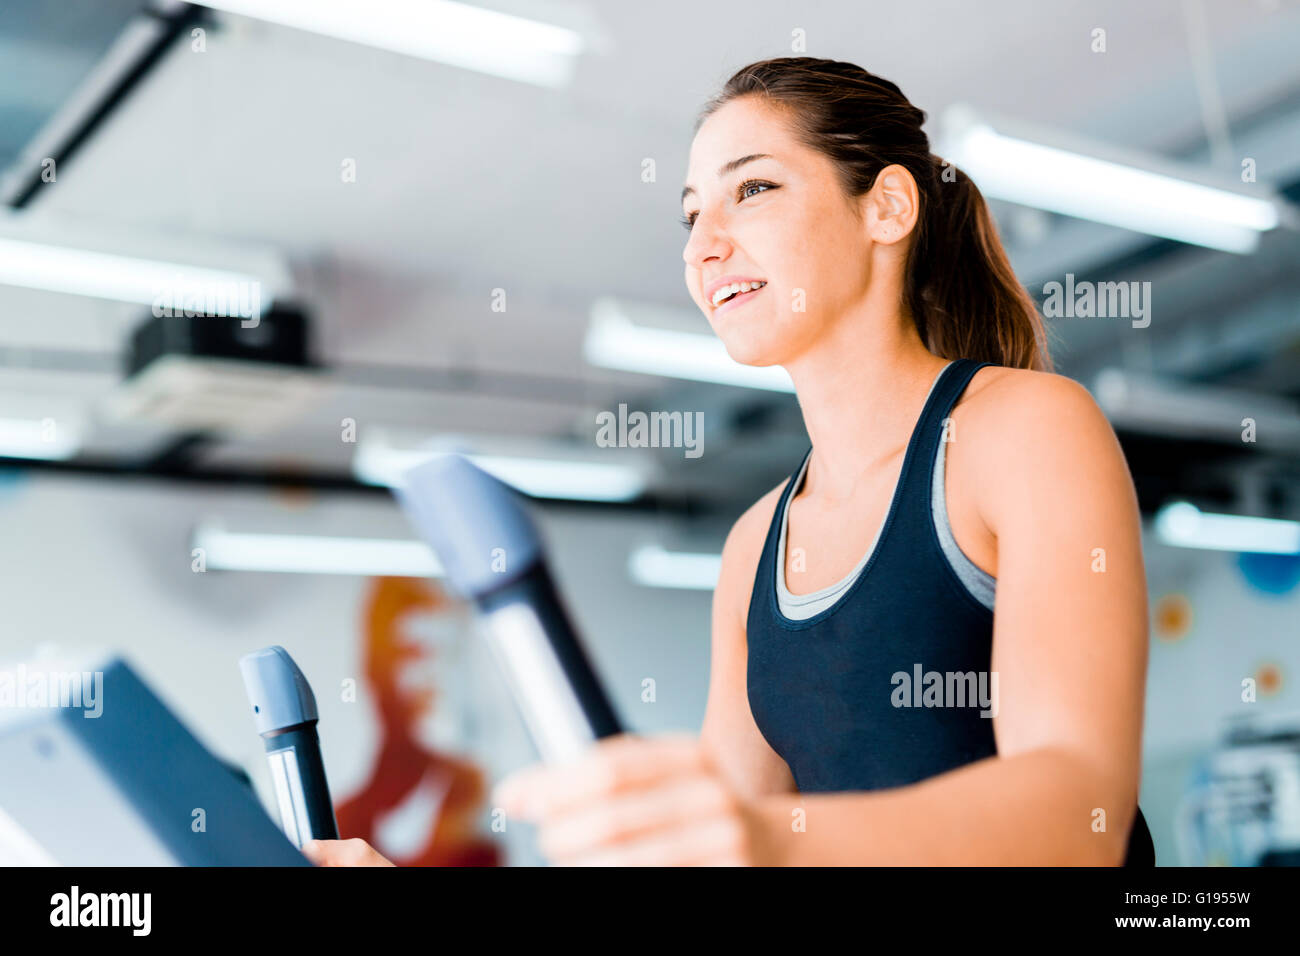 Beautiful young lady using the elliptical trainer in a gym in a positive mood - Stock Image